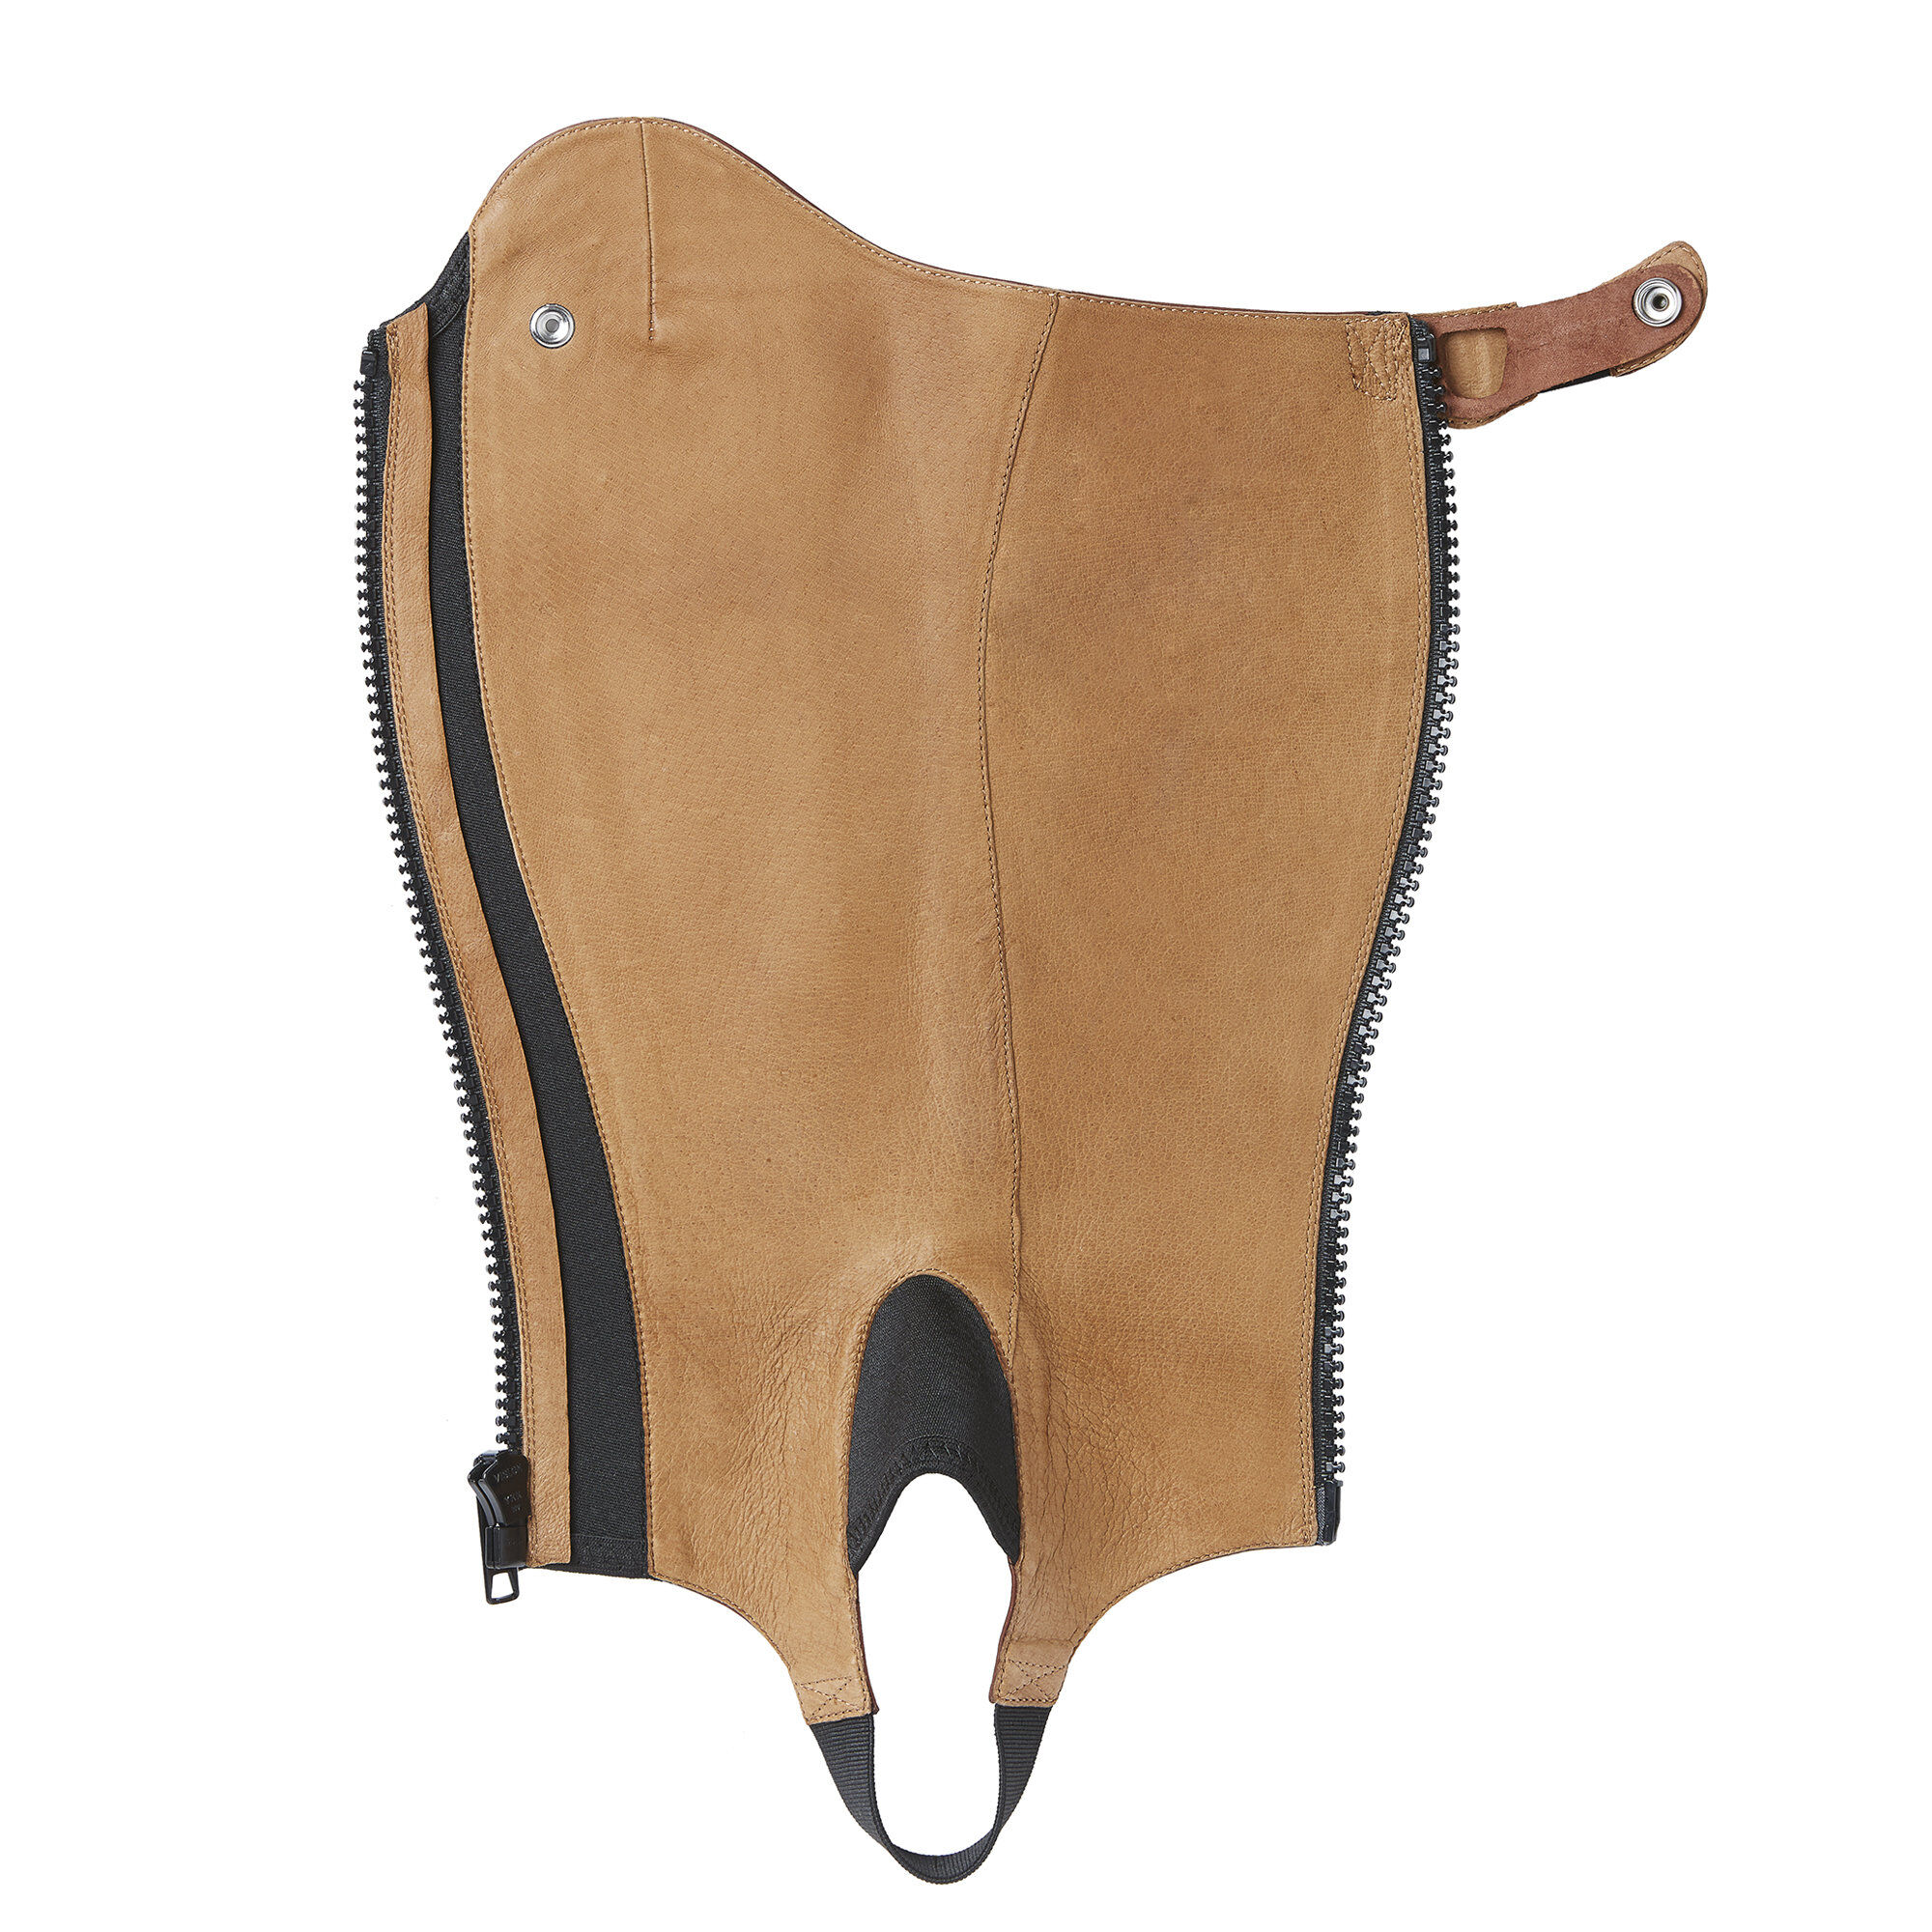 Ariat Close Contour Show Chaps, Cognac, St